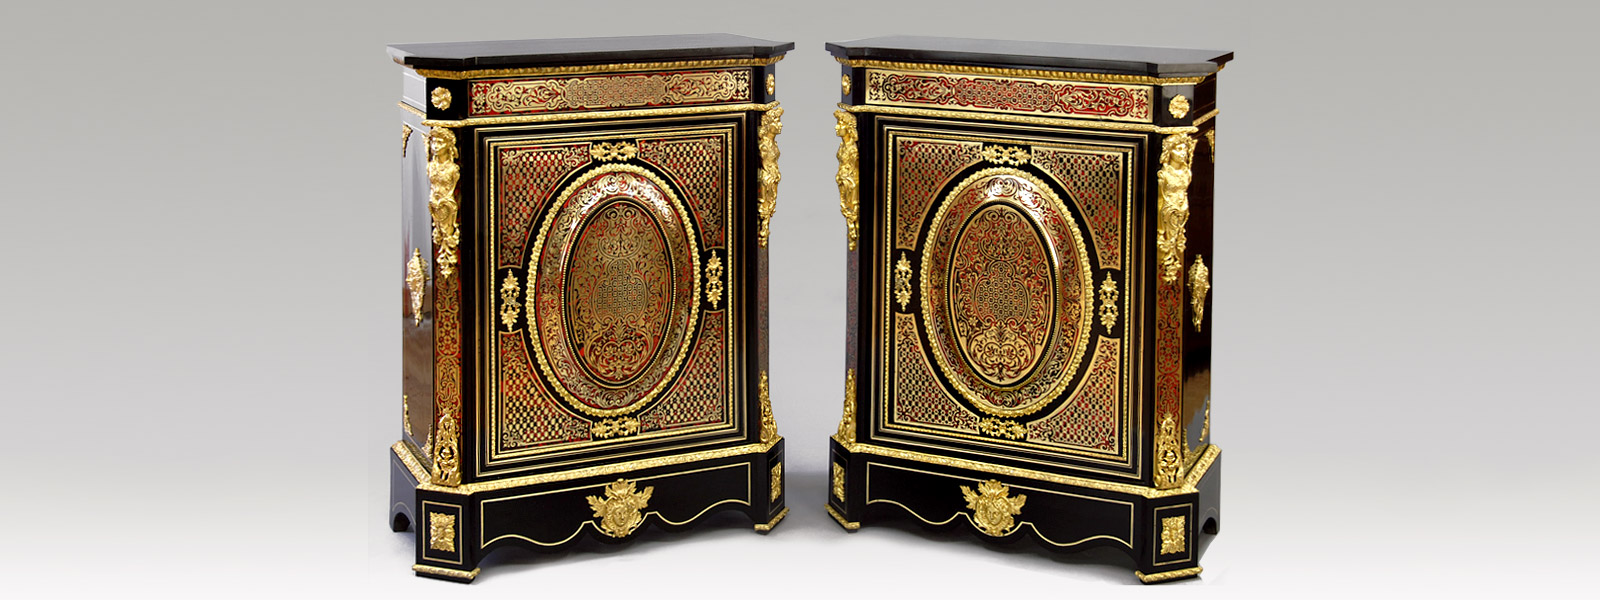 eb niste restaurateur de meubles d 39 appuis napol on iii en marqueterie boulle jean yves le bot. Black Bedroom Furniture Sets. Home Design Ideas